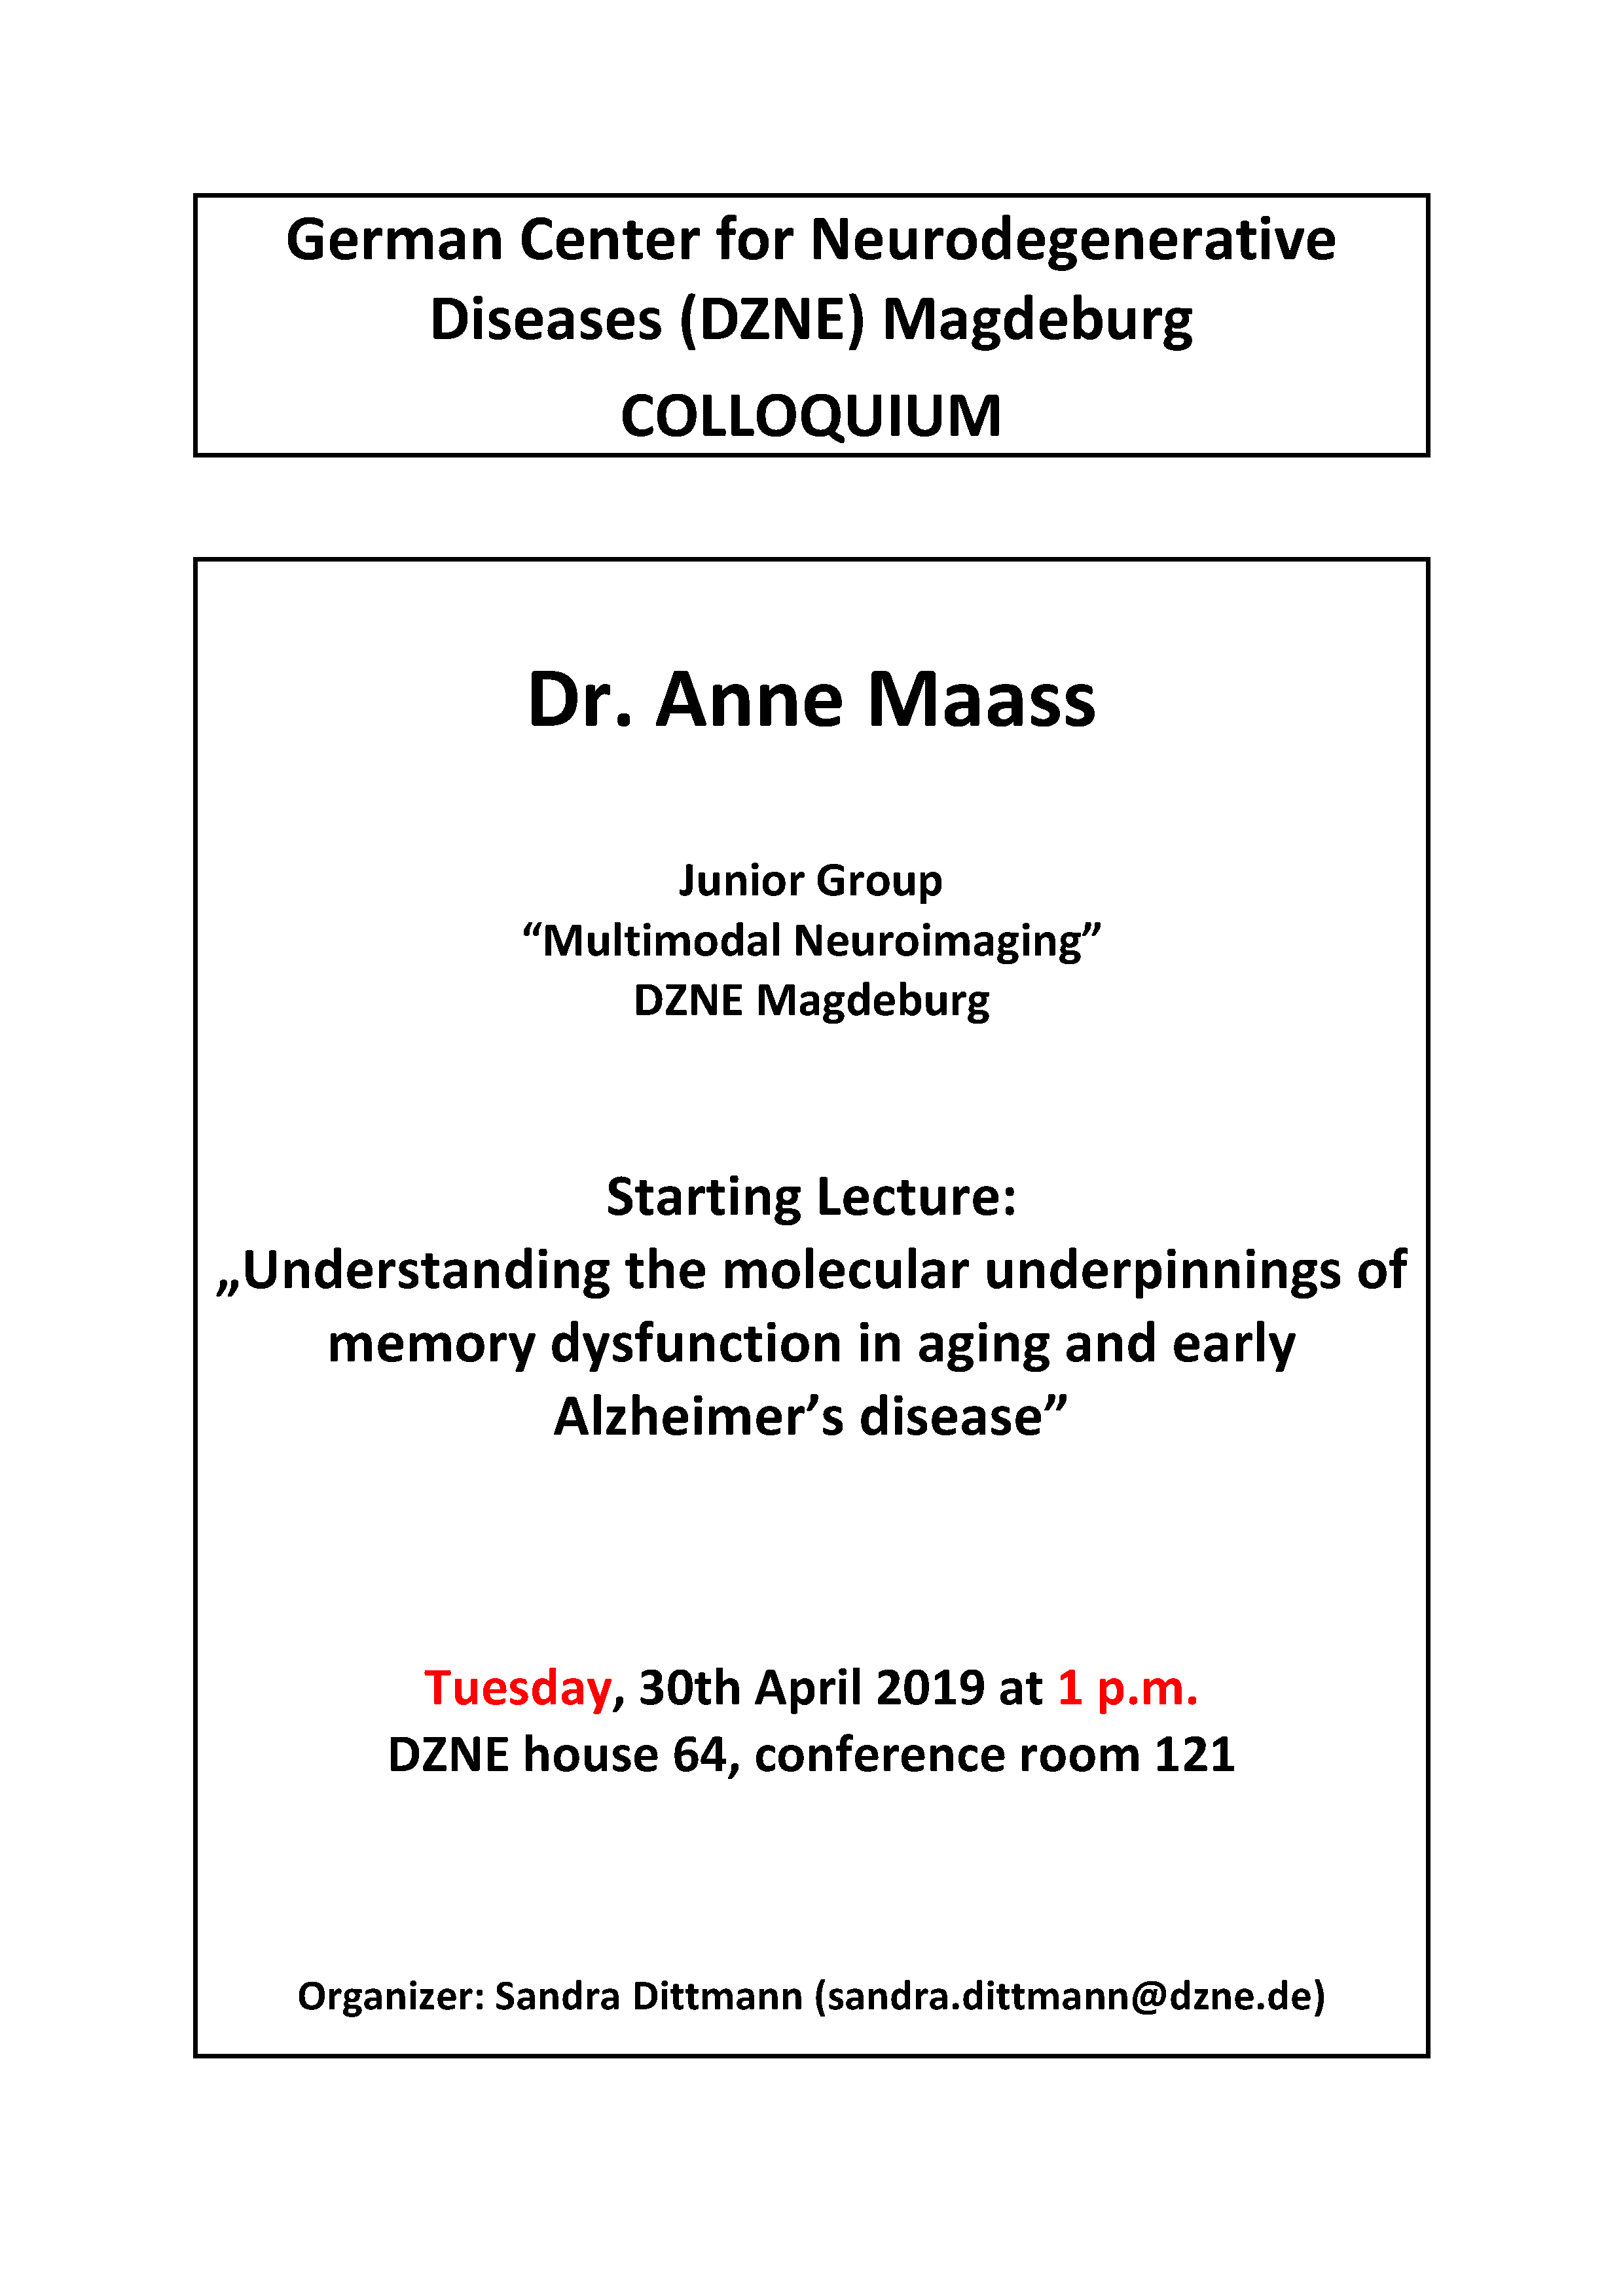 DZNE Colloquium: Understanding the molecular underpinnings of memory dysfunction in aging and early Alzheimer's disease @ DZNE house 64, conference room 121